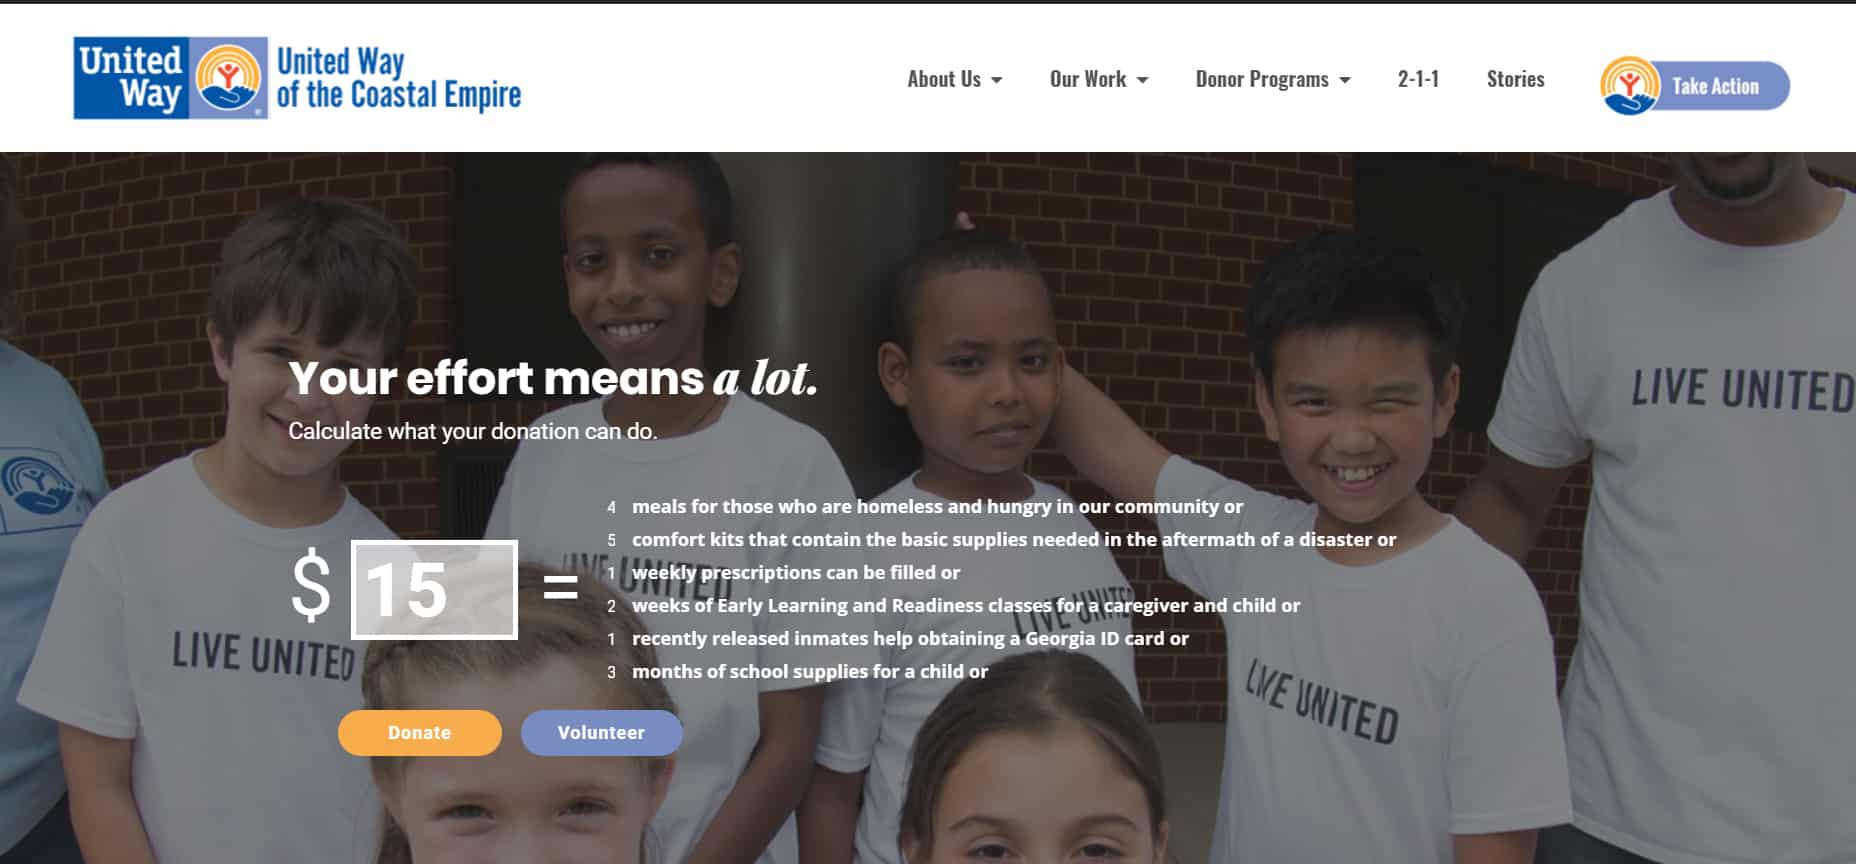 UWCE's Website Gets A Fresh, New Design